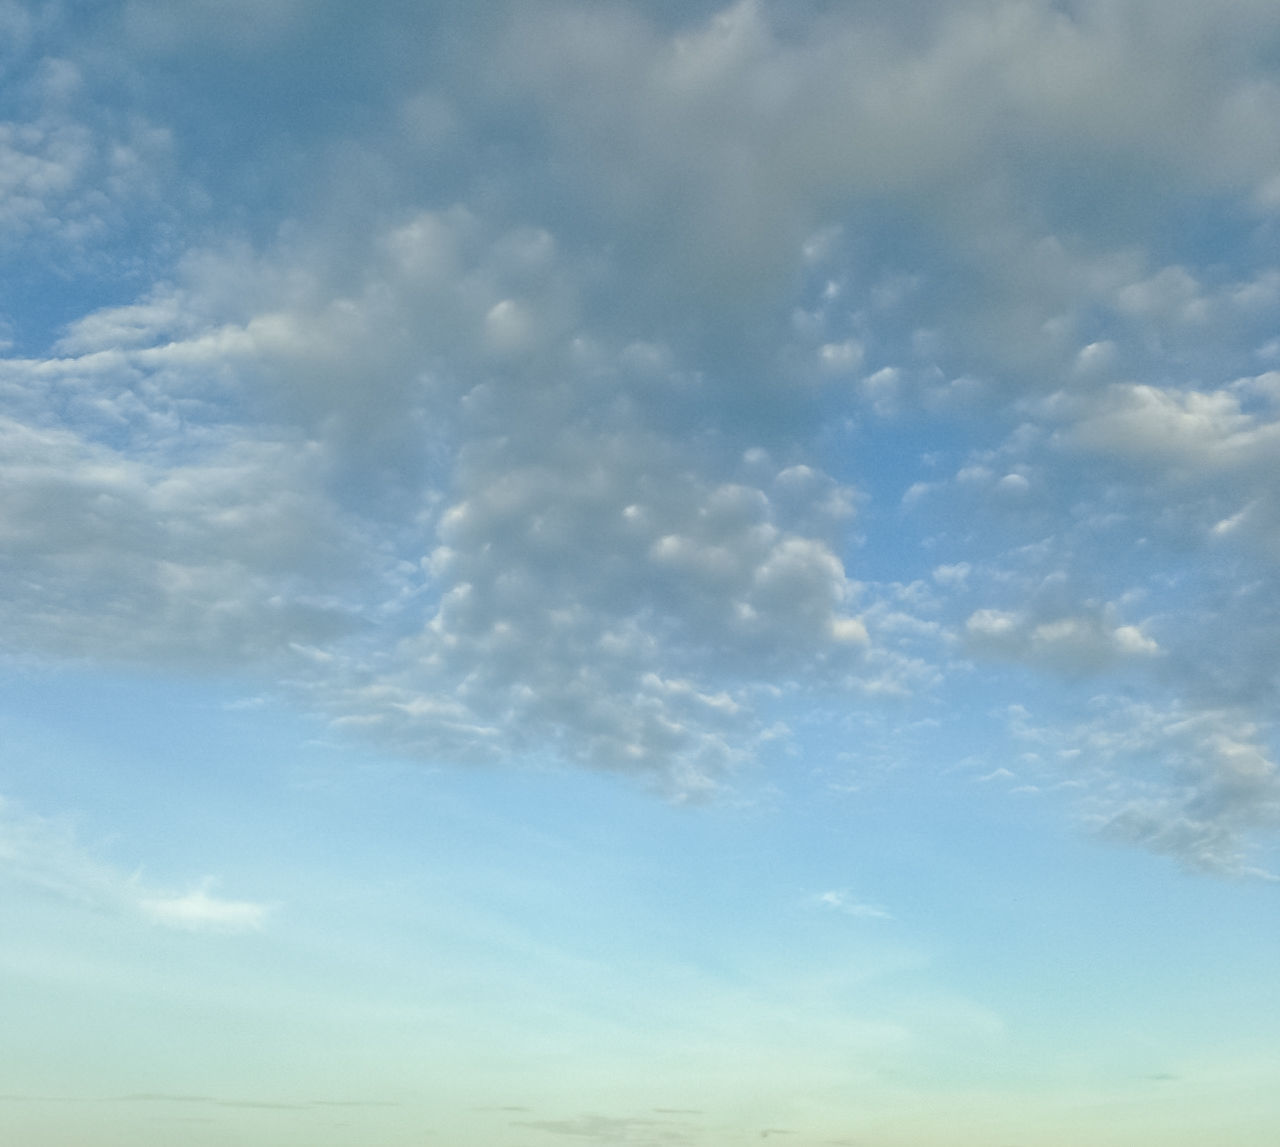 nature, sky, beauty in nature, cloud - sky, tranquility, no people, low angle view, scenics, tranquil scene, backgrounds, day, sky only, outdoors, blue